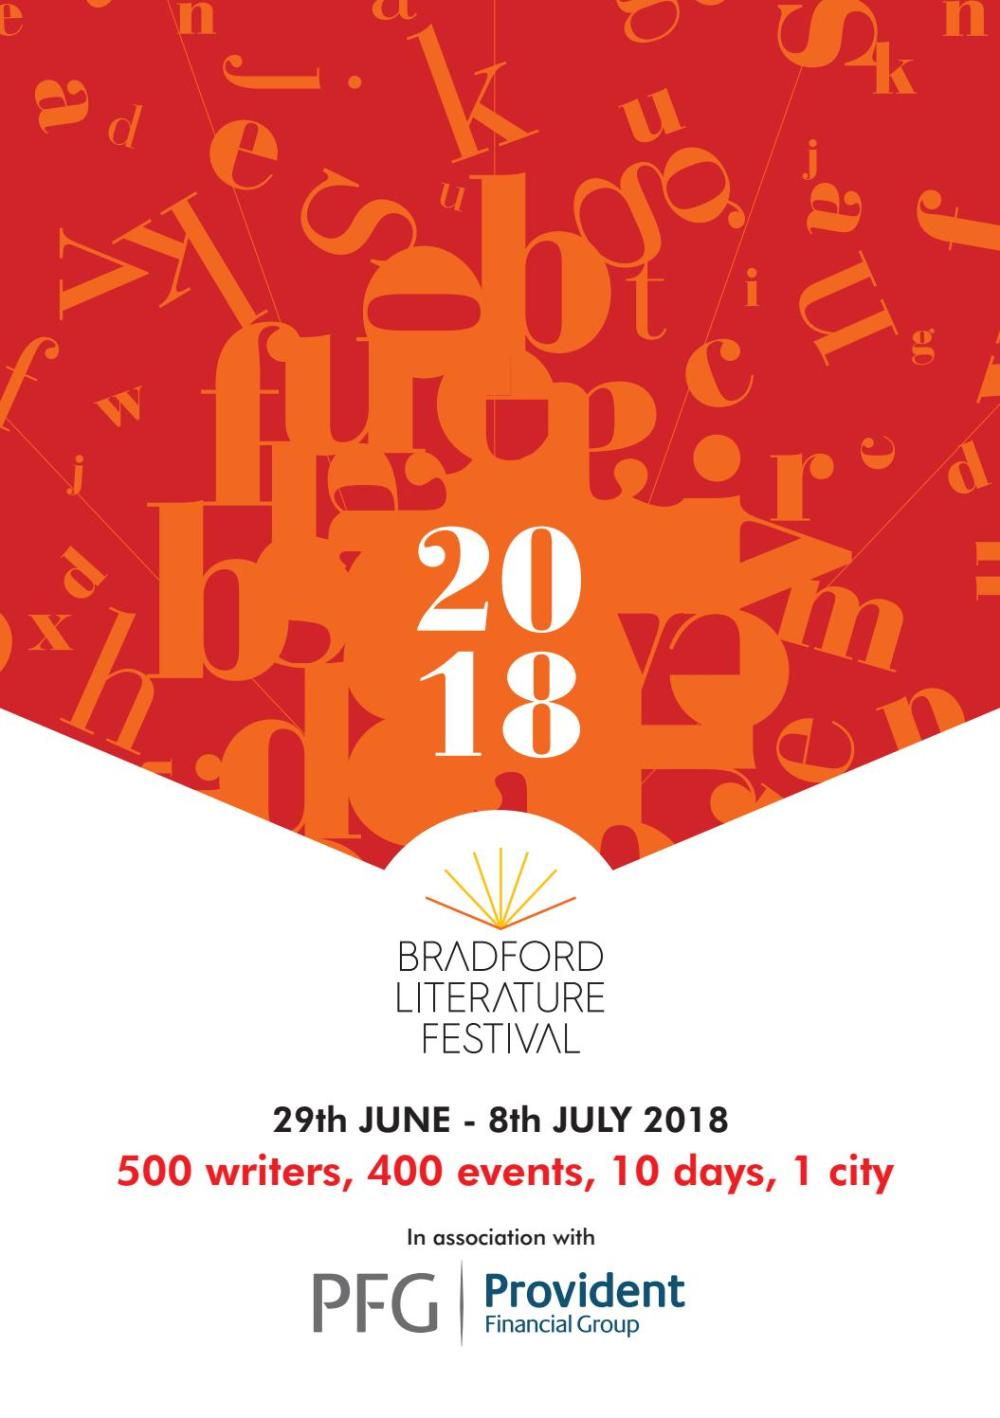 medium resolution of bradford literature festival 2018 programme